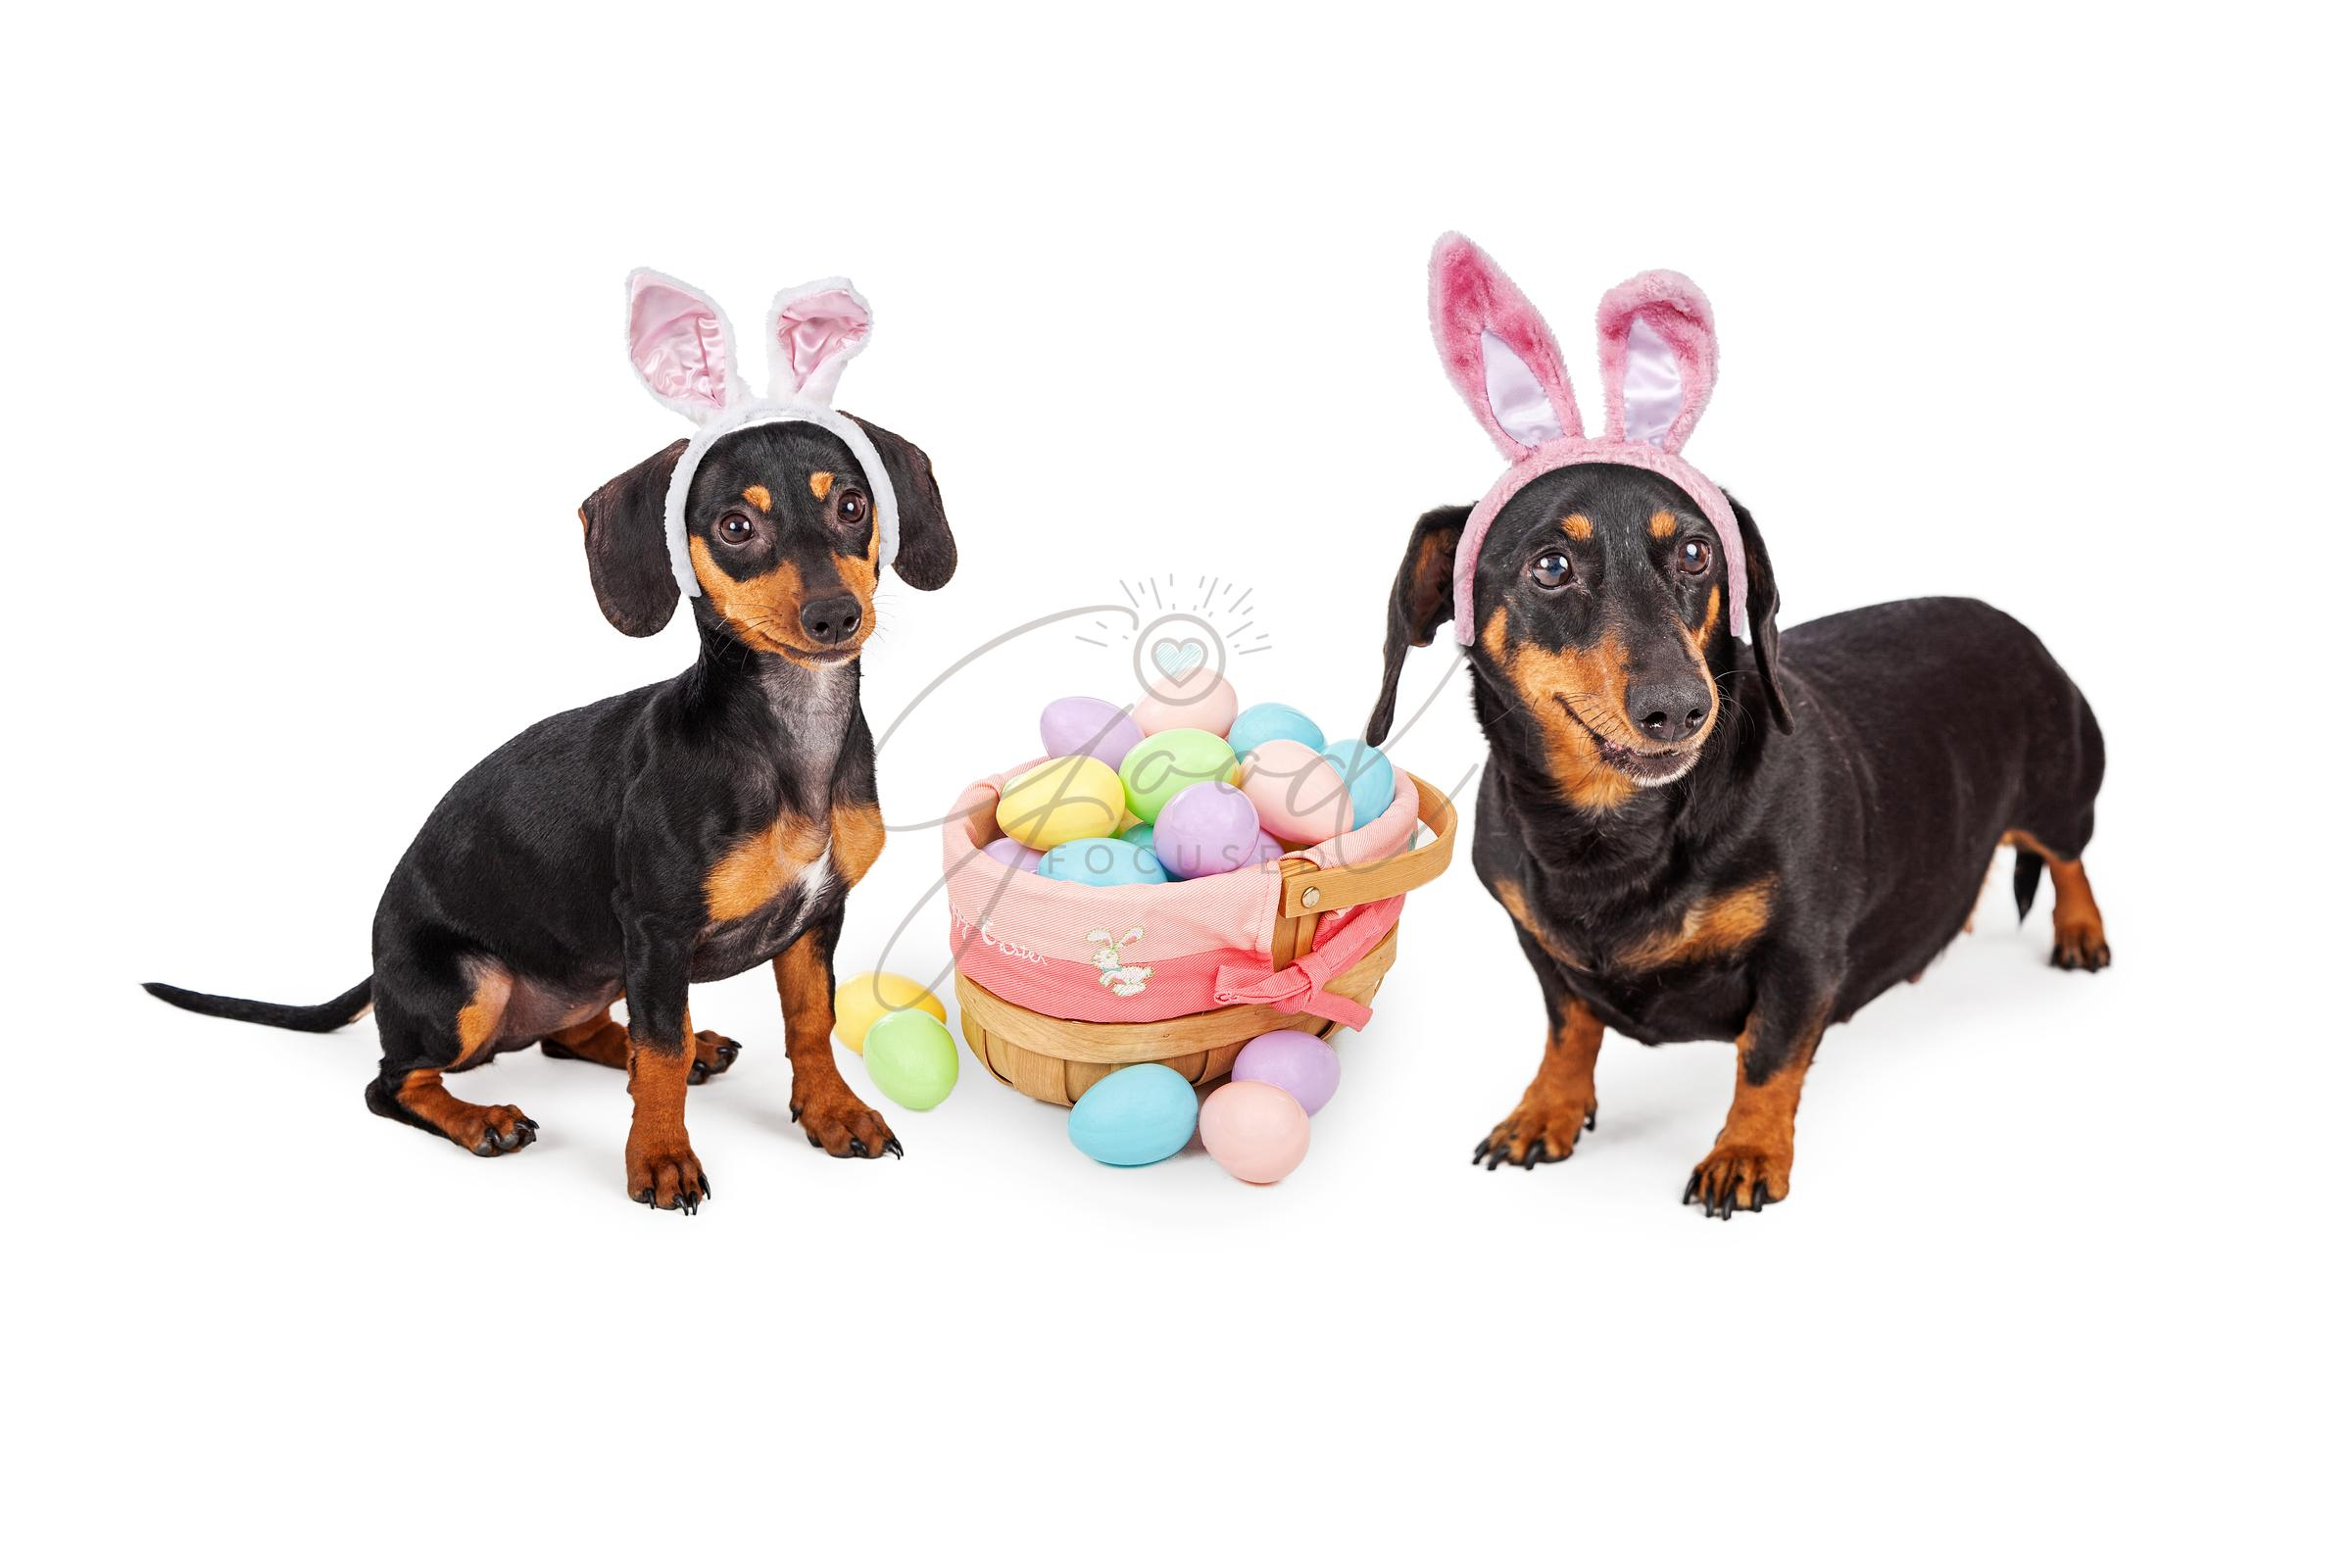 Dachshund Easter Celebration